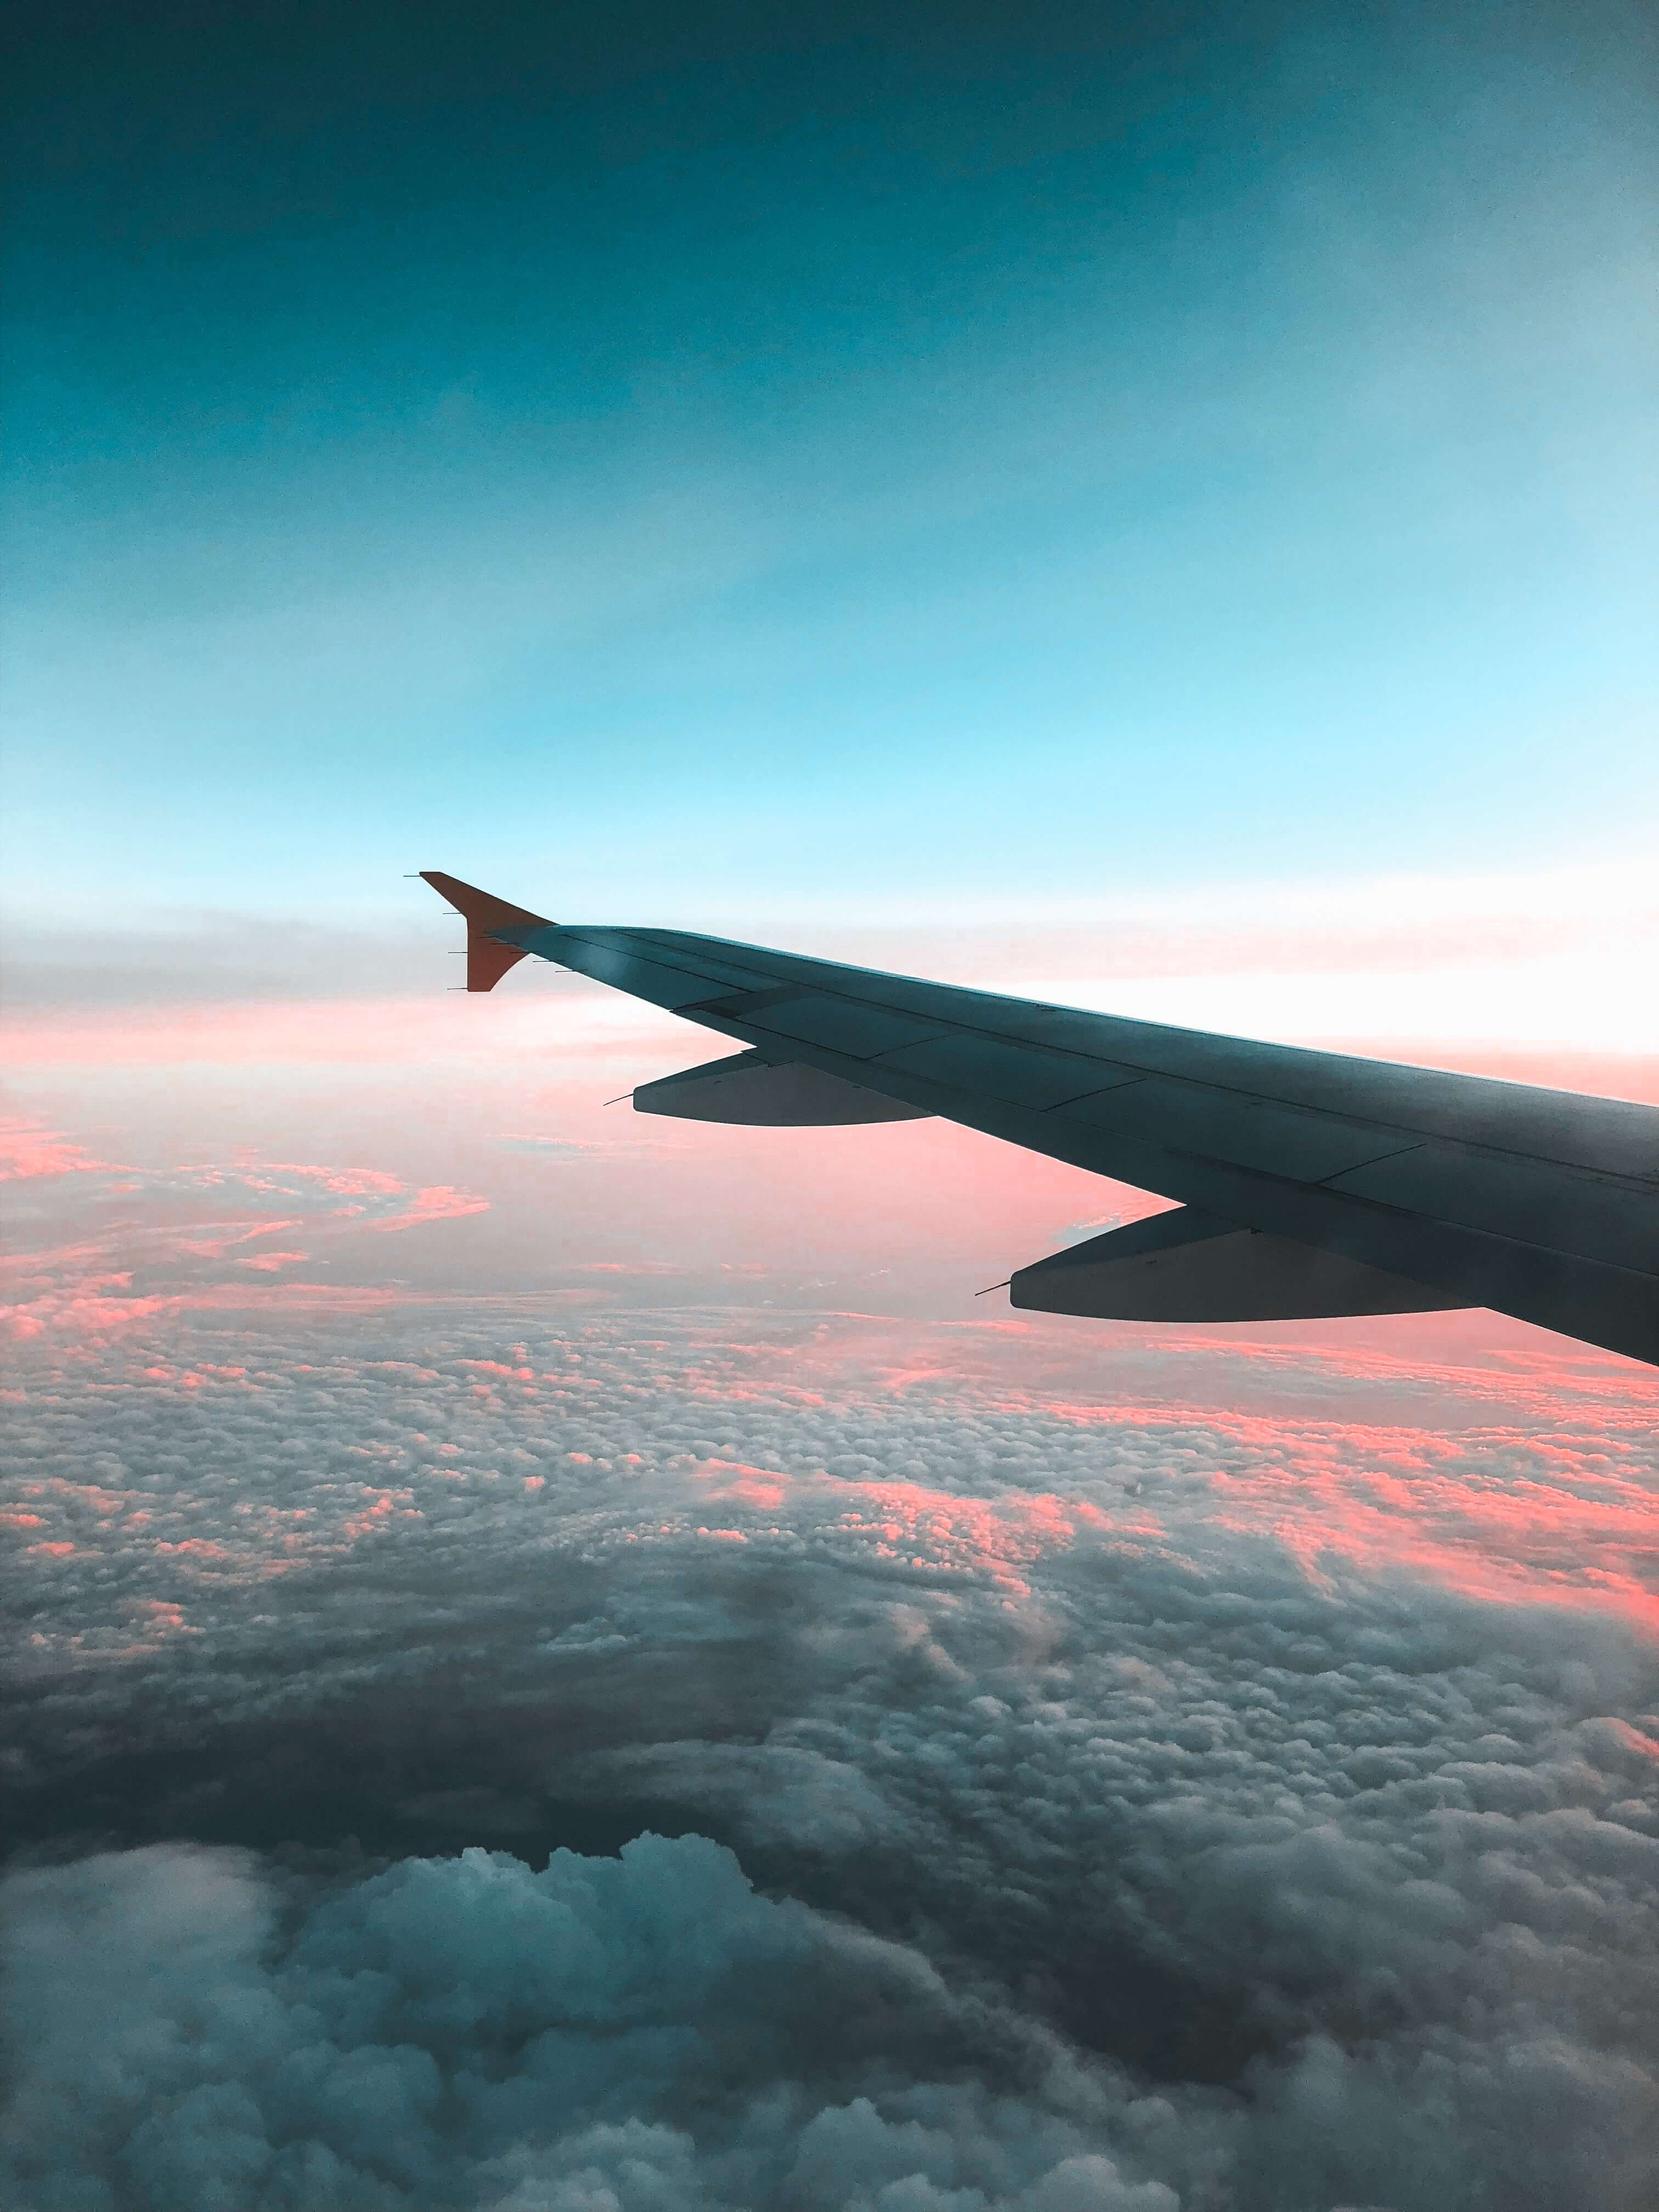 Finding Cheap Flights can be very time consuming but satisfying